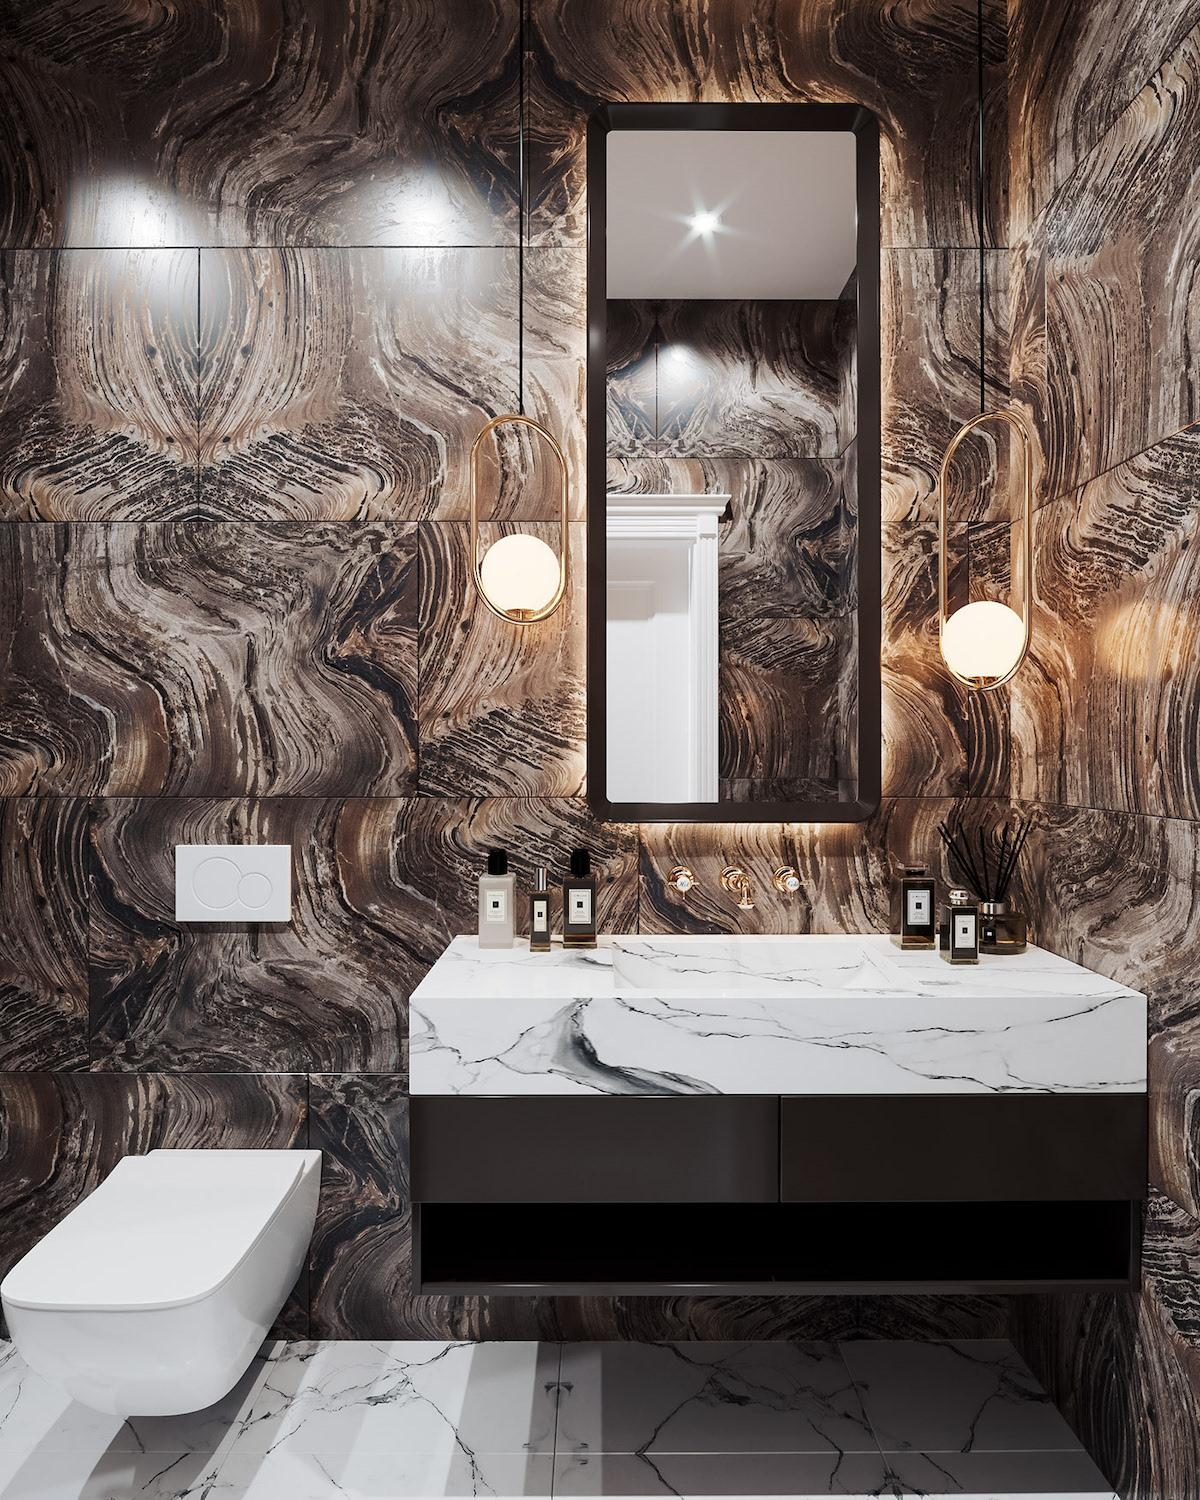 Gorgeous made bathroom with contrast of brown walls and dazzling white sanitary ware